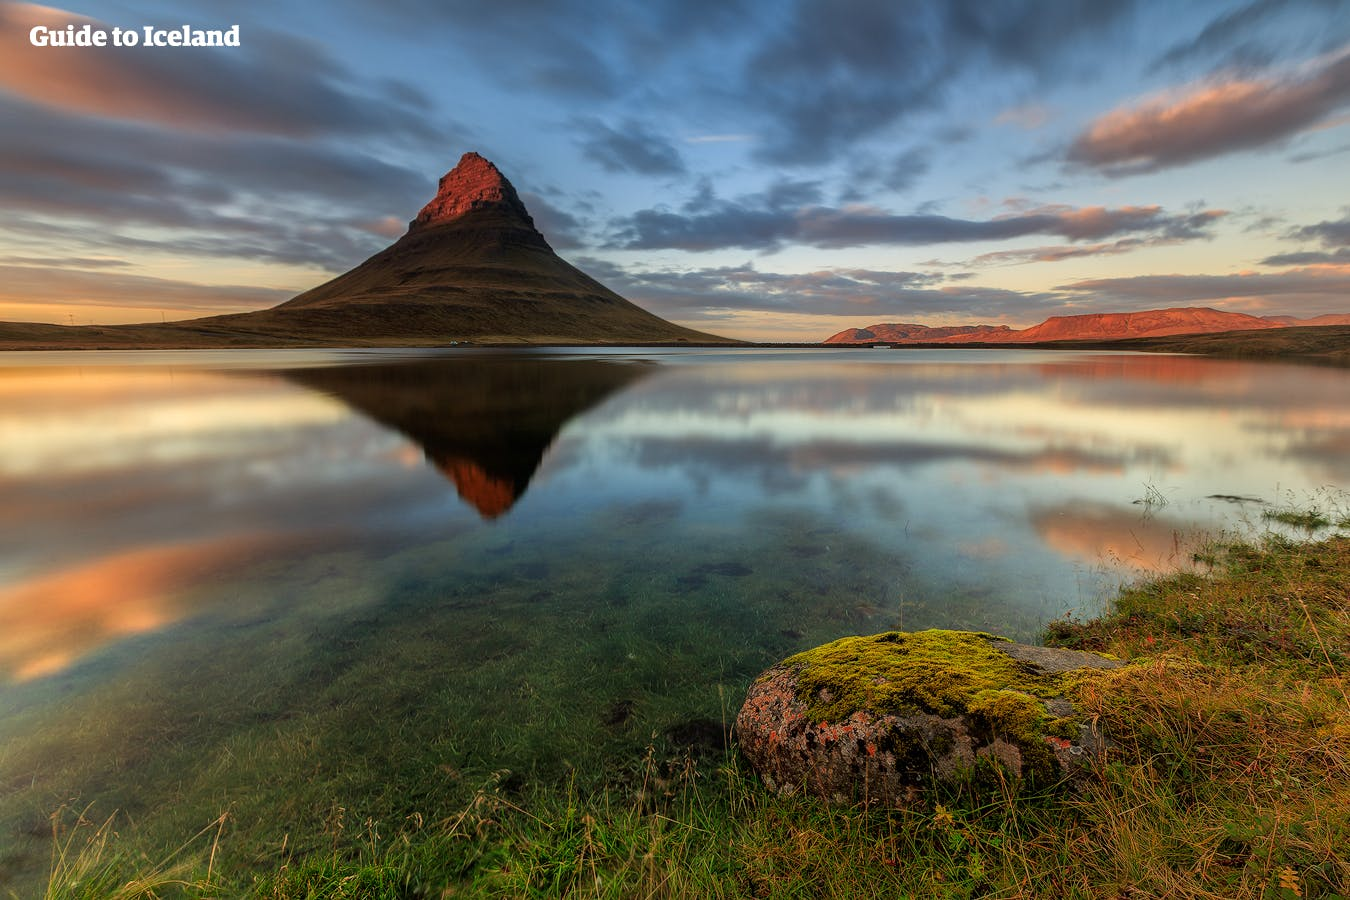 Kirkjufell Mountain is one of the most iconic landmarks on the Snæfellsnes Peninsula.